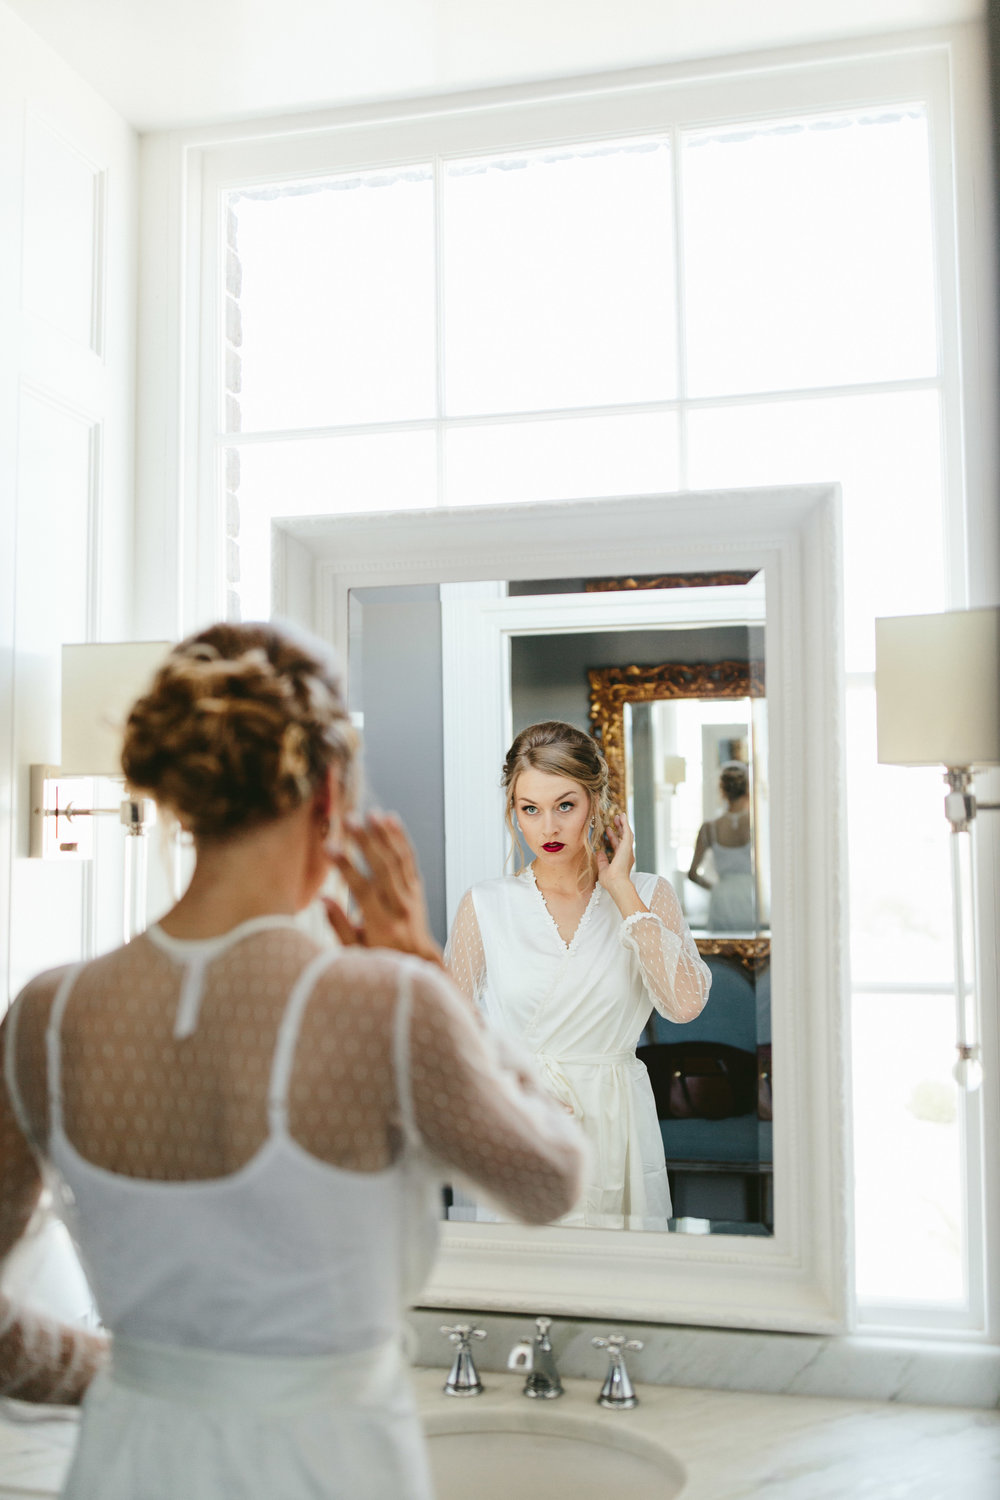 Glam bridal makeup, bold lip bridal makeup, bridal makeup, red lipstick bride, red lip bridal makeup, lace robe, bridal robe, vintage bridal robe, bride getting ready, Philadelphia wedding, destination wedding, Brooklyn wedding, Brooklyn elopement, Philadelphia elopement, Gadsden house Charleston South Carolina, southern wedding inspiration, unique wedding inspiration, wedding inspiration, destination wedding inspiration, wedding ideas, lace wedding dresses, classy wedding ideas